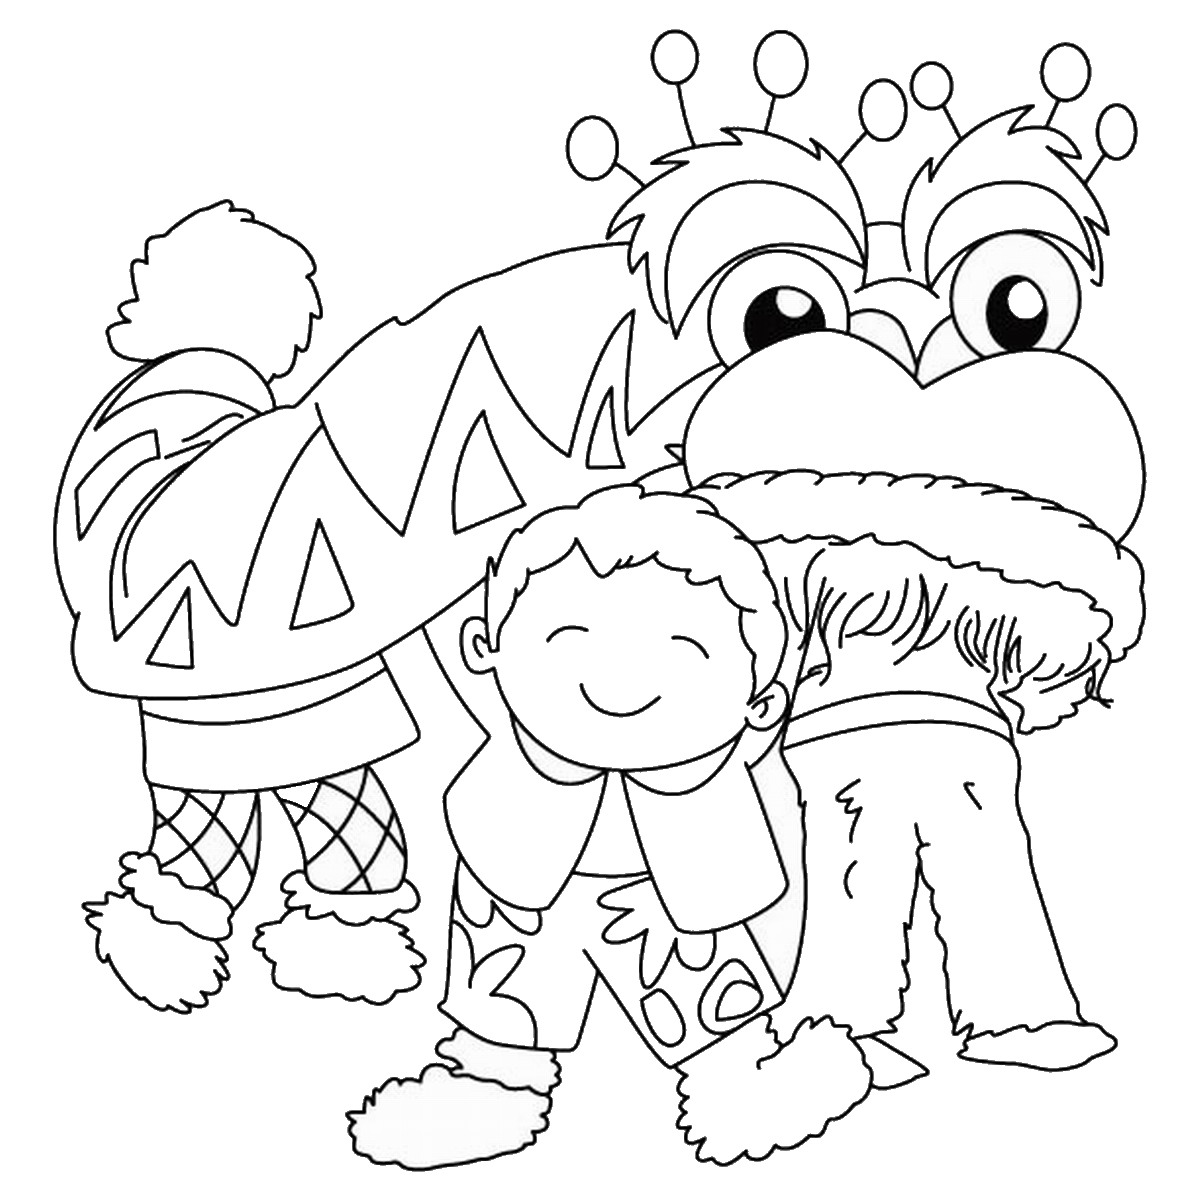 chinese colouring sheets free printable chinese dragon coloring pages for kids sheets colouring chinese